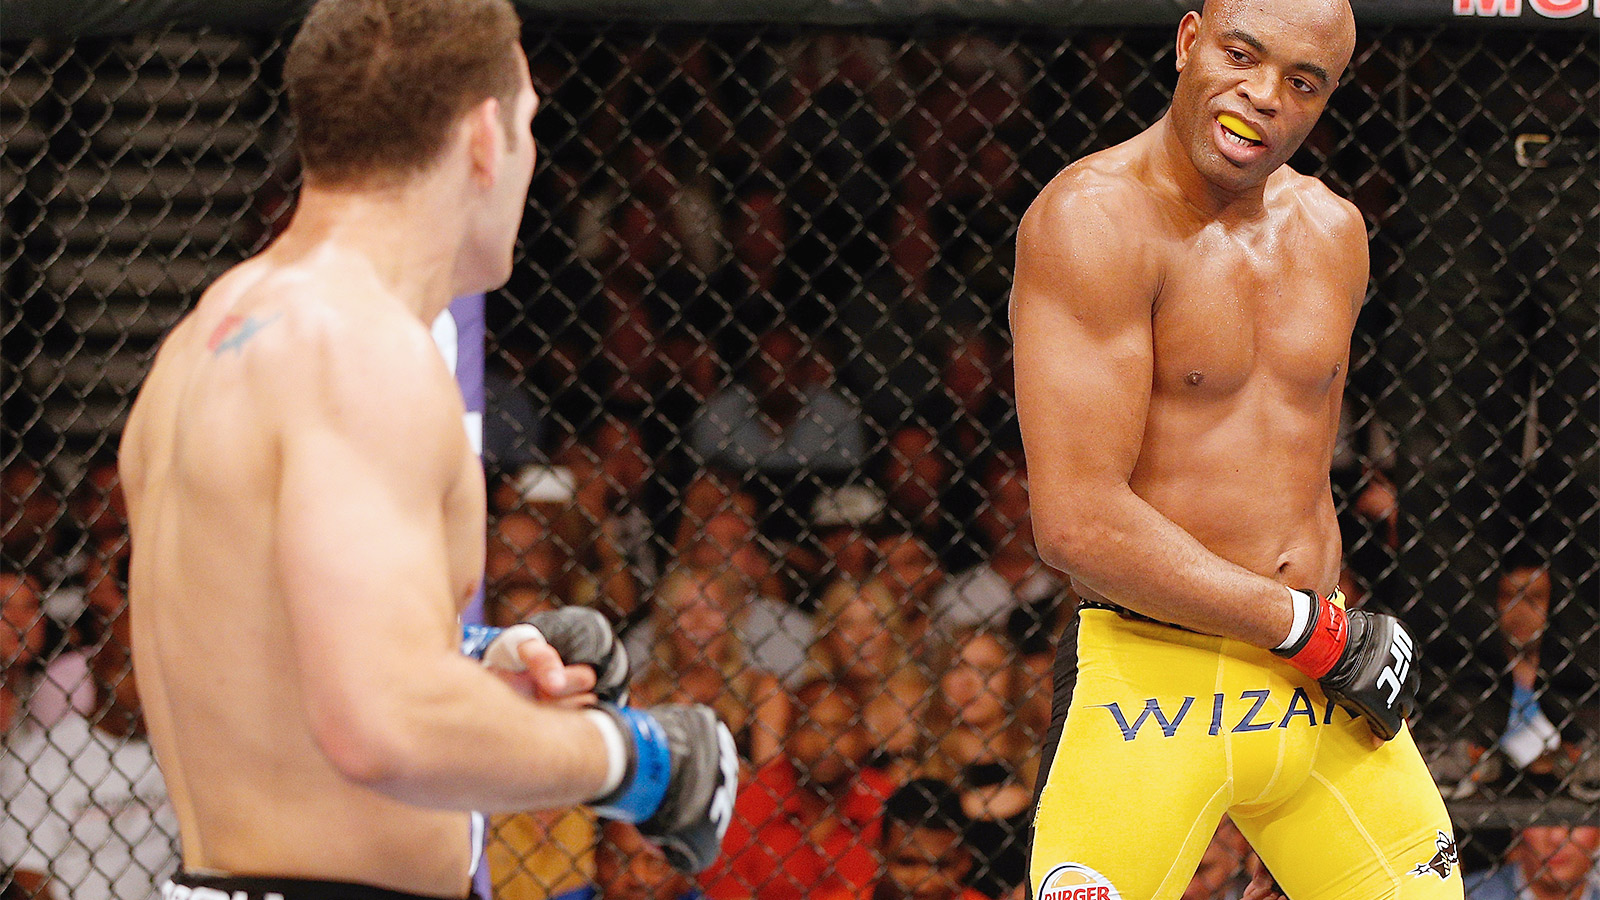 The Kingslayer: A 6-month chronicle of Chris Weidman's journey back to Anderson Silva | FOX Sports